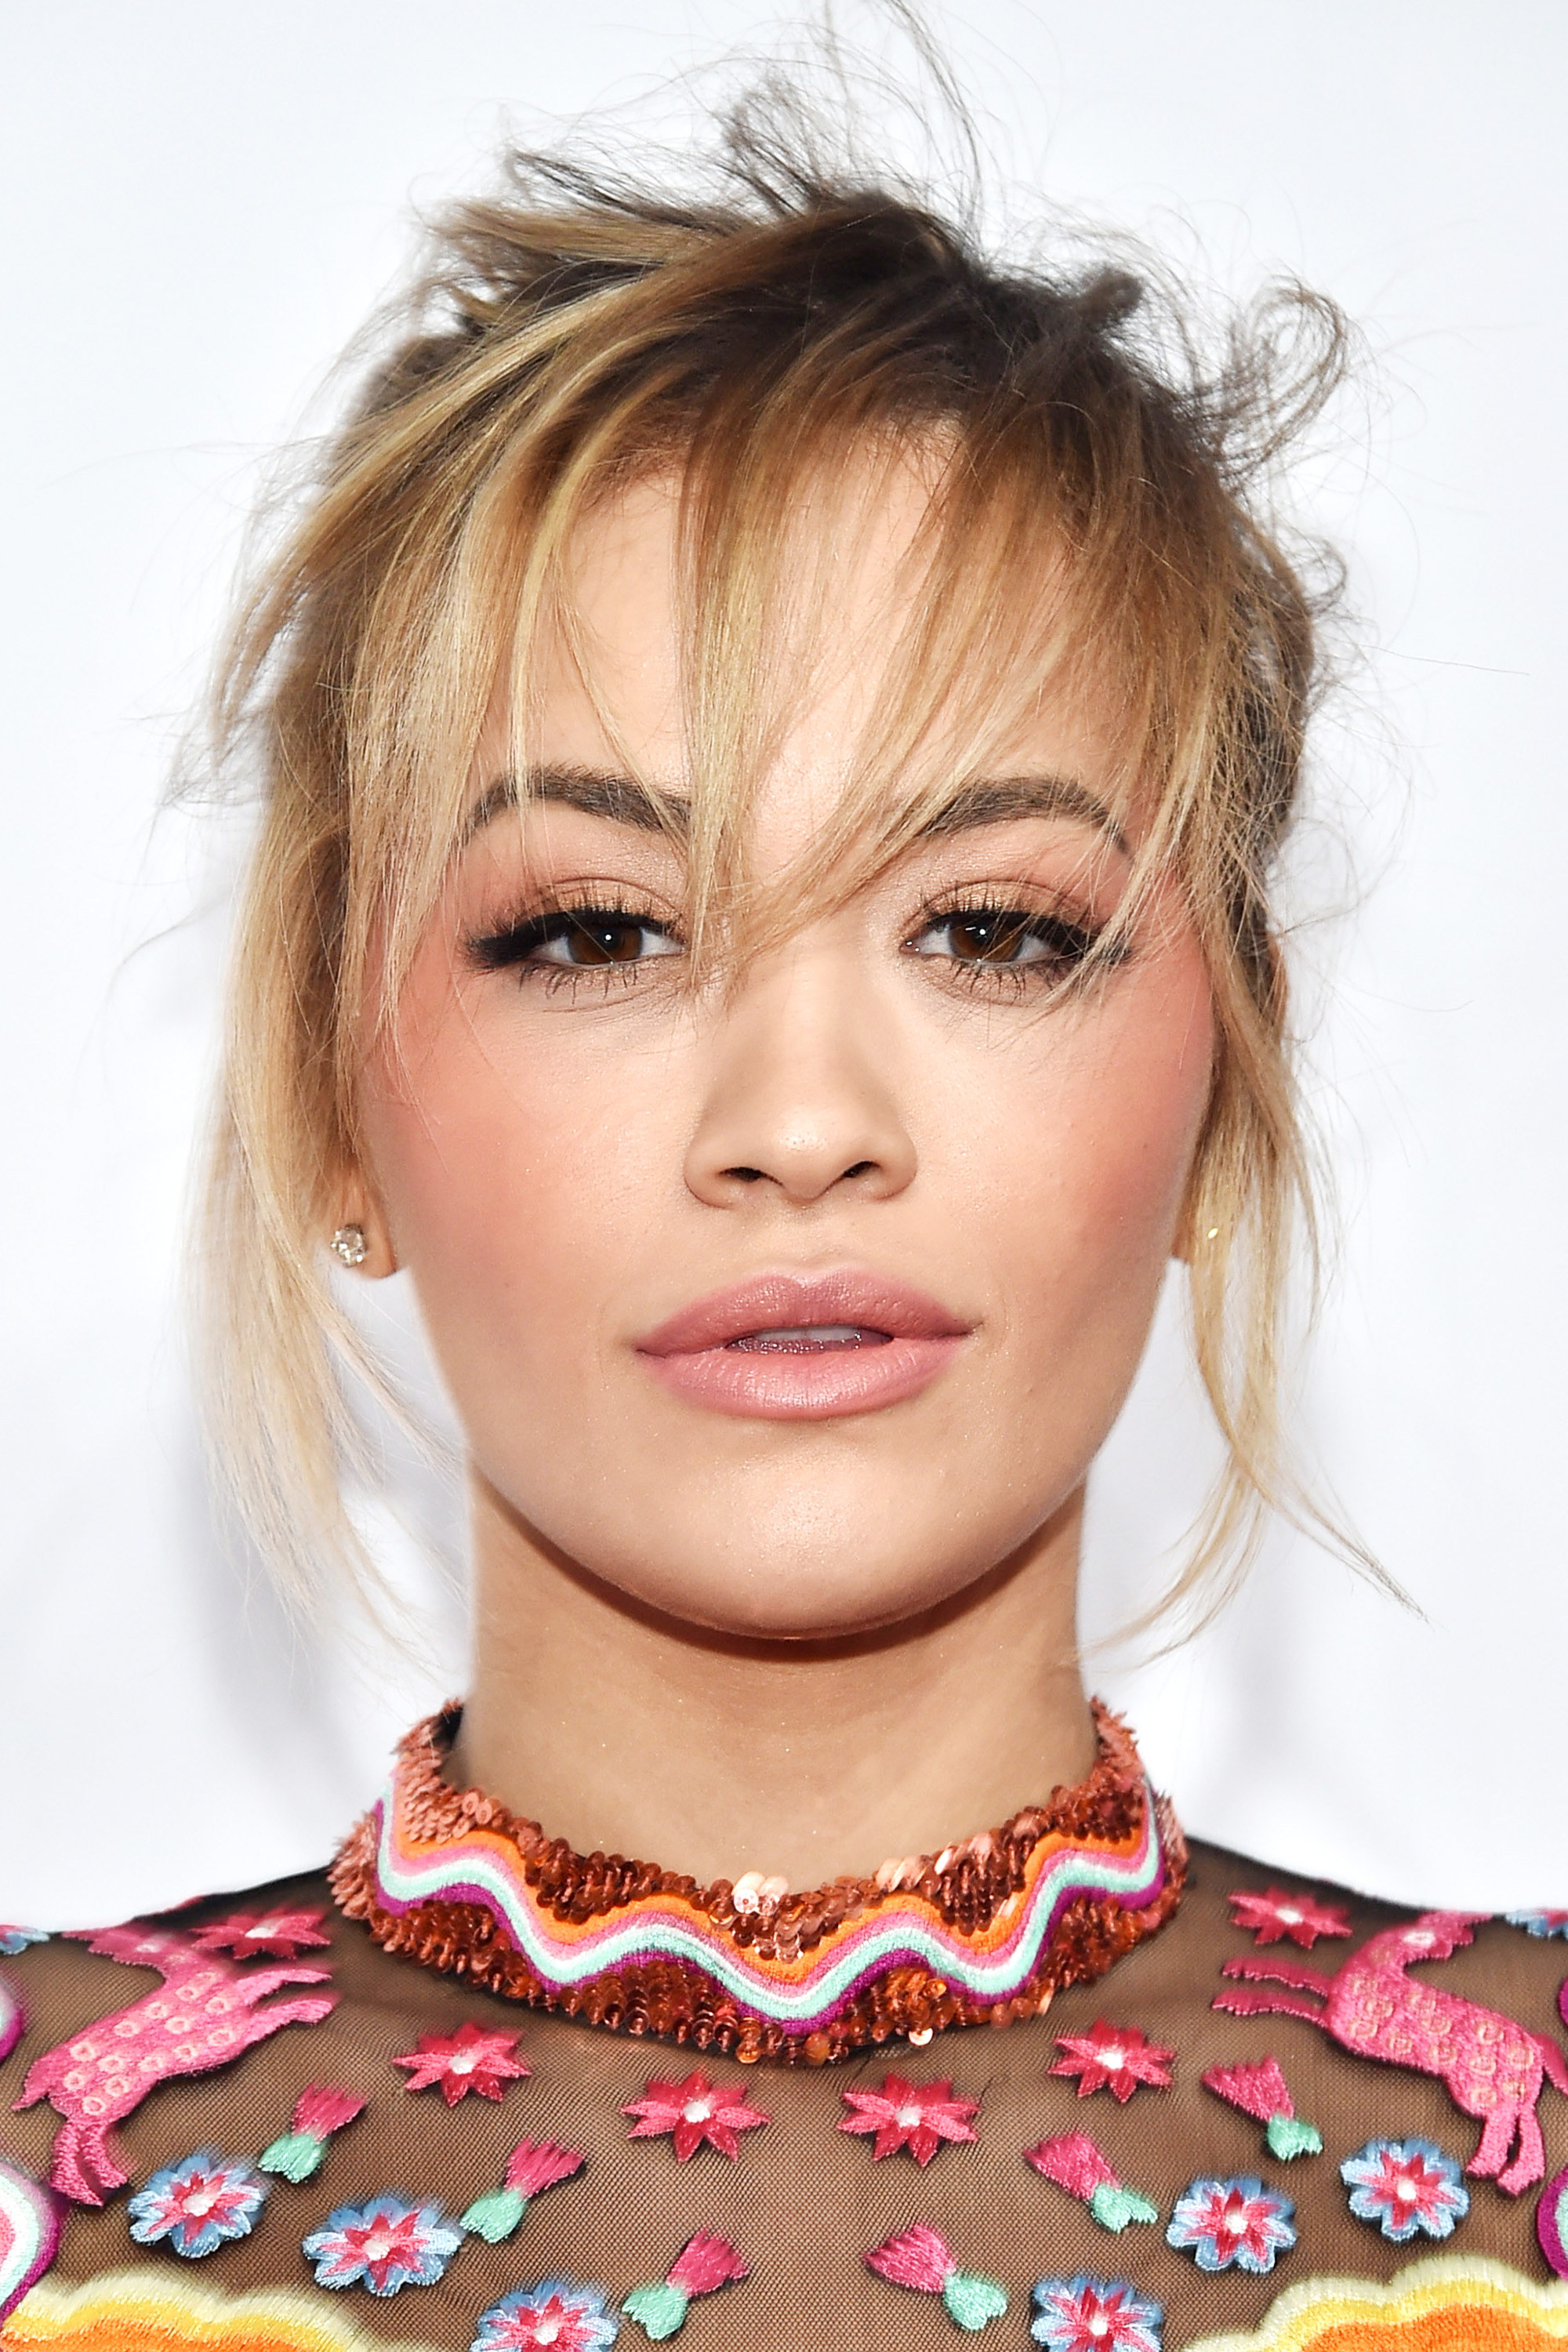 100 Hairstyles With Bangs You'll Want to Copy - Celebrity ...